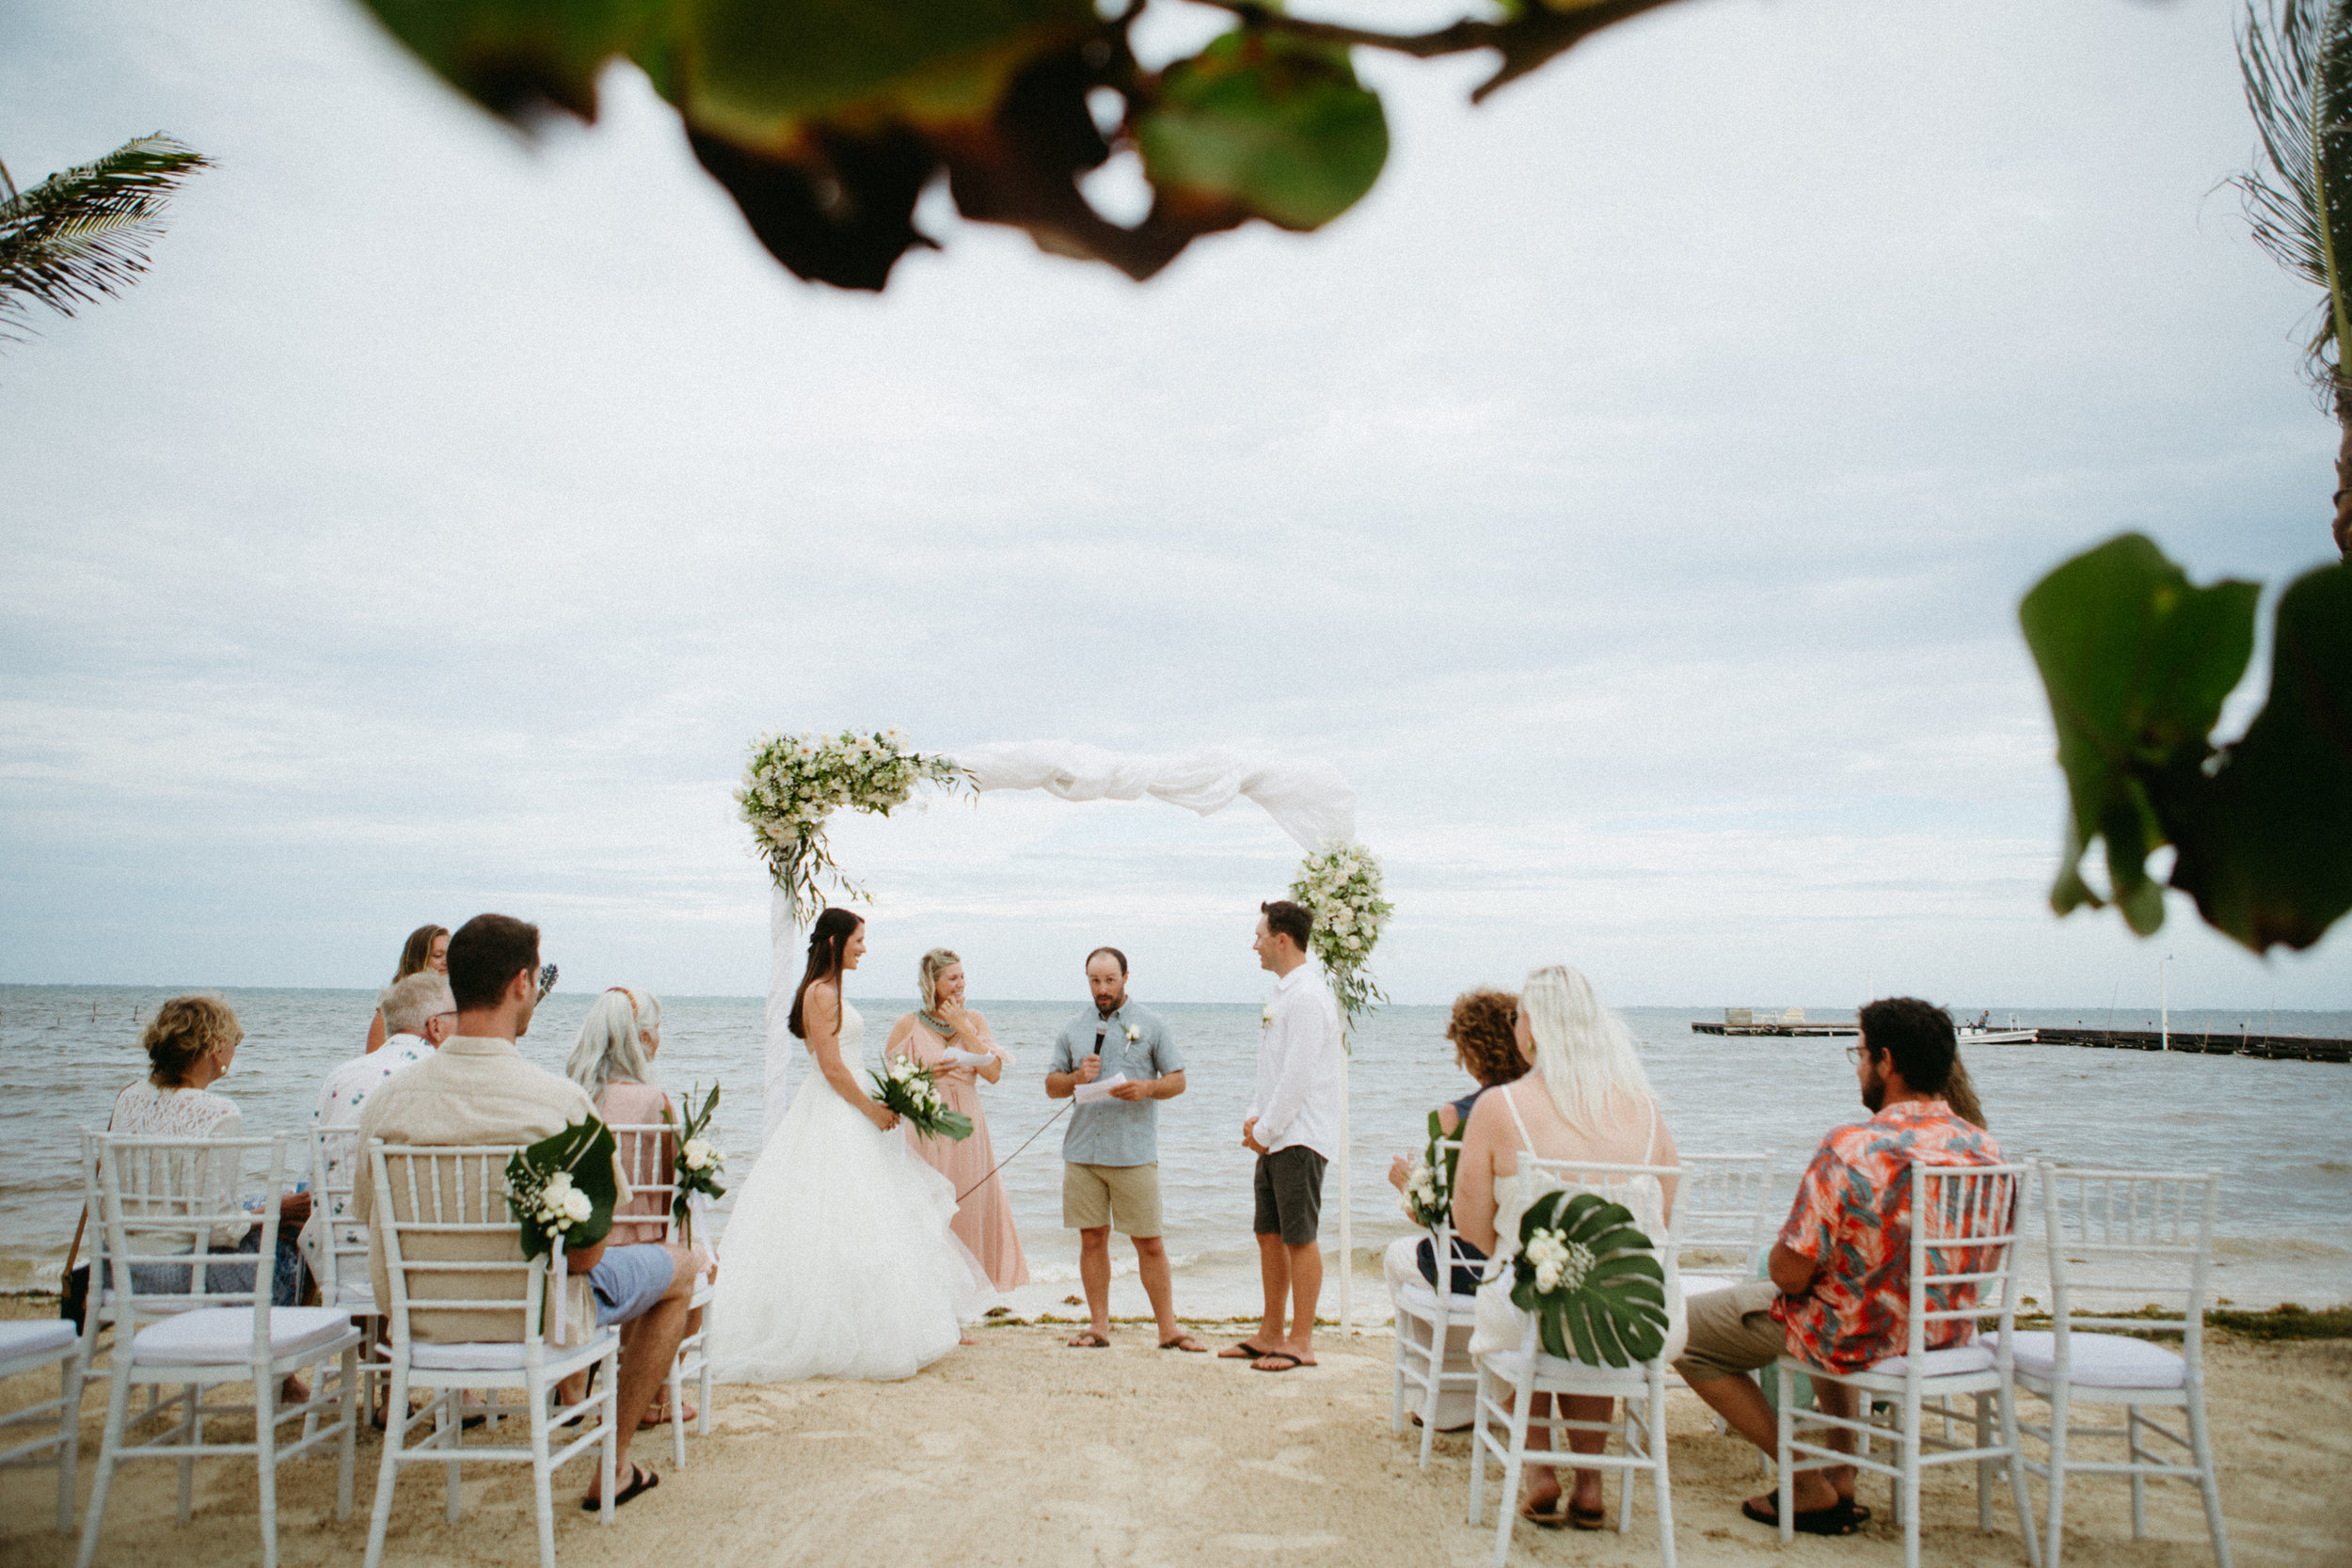 san-pescador-belize-wedding-christinemariephoto-j-k-89.jpg